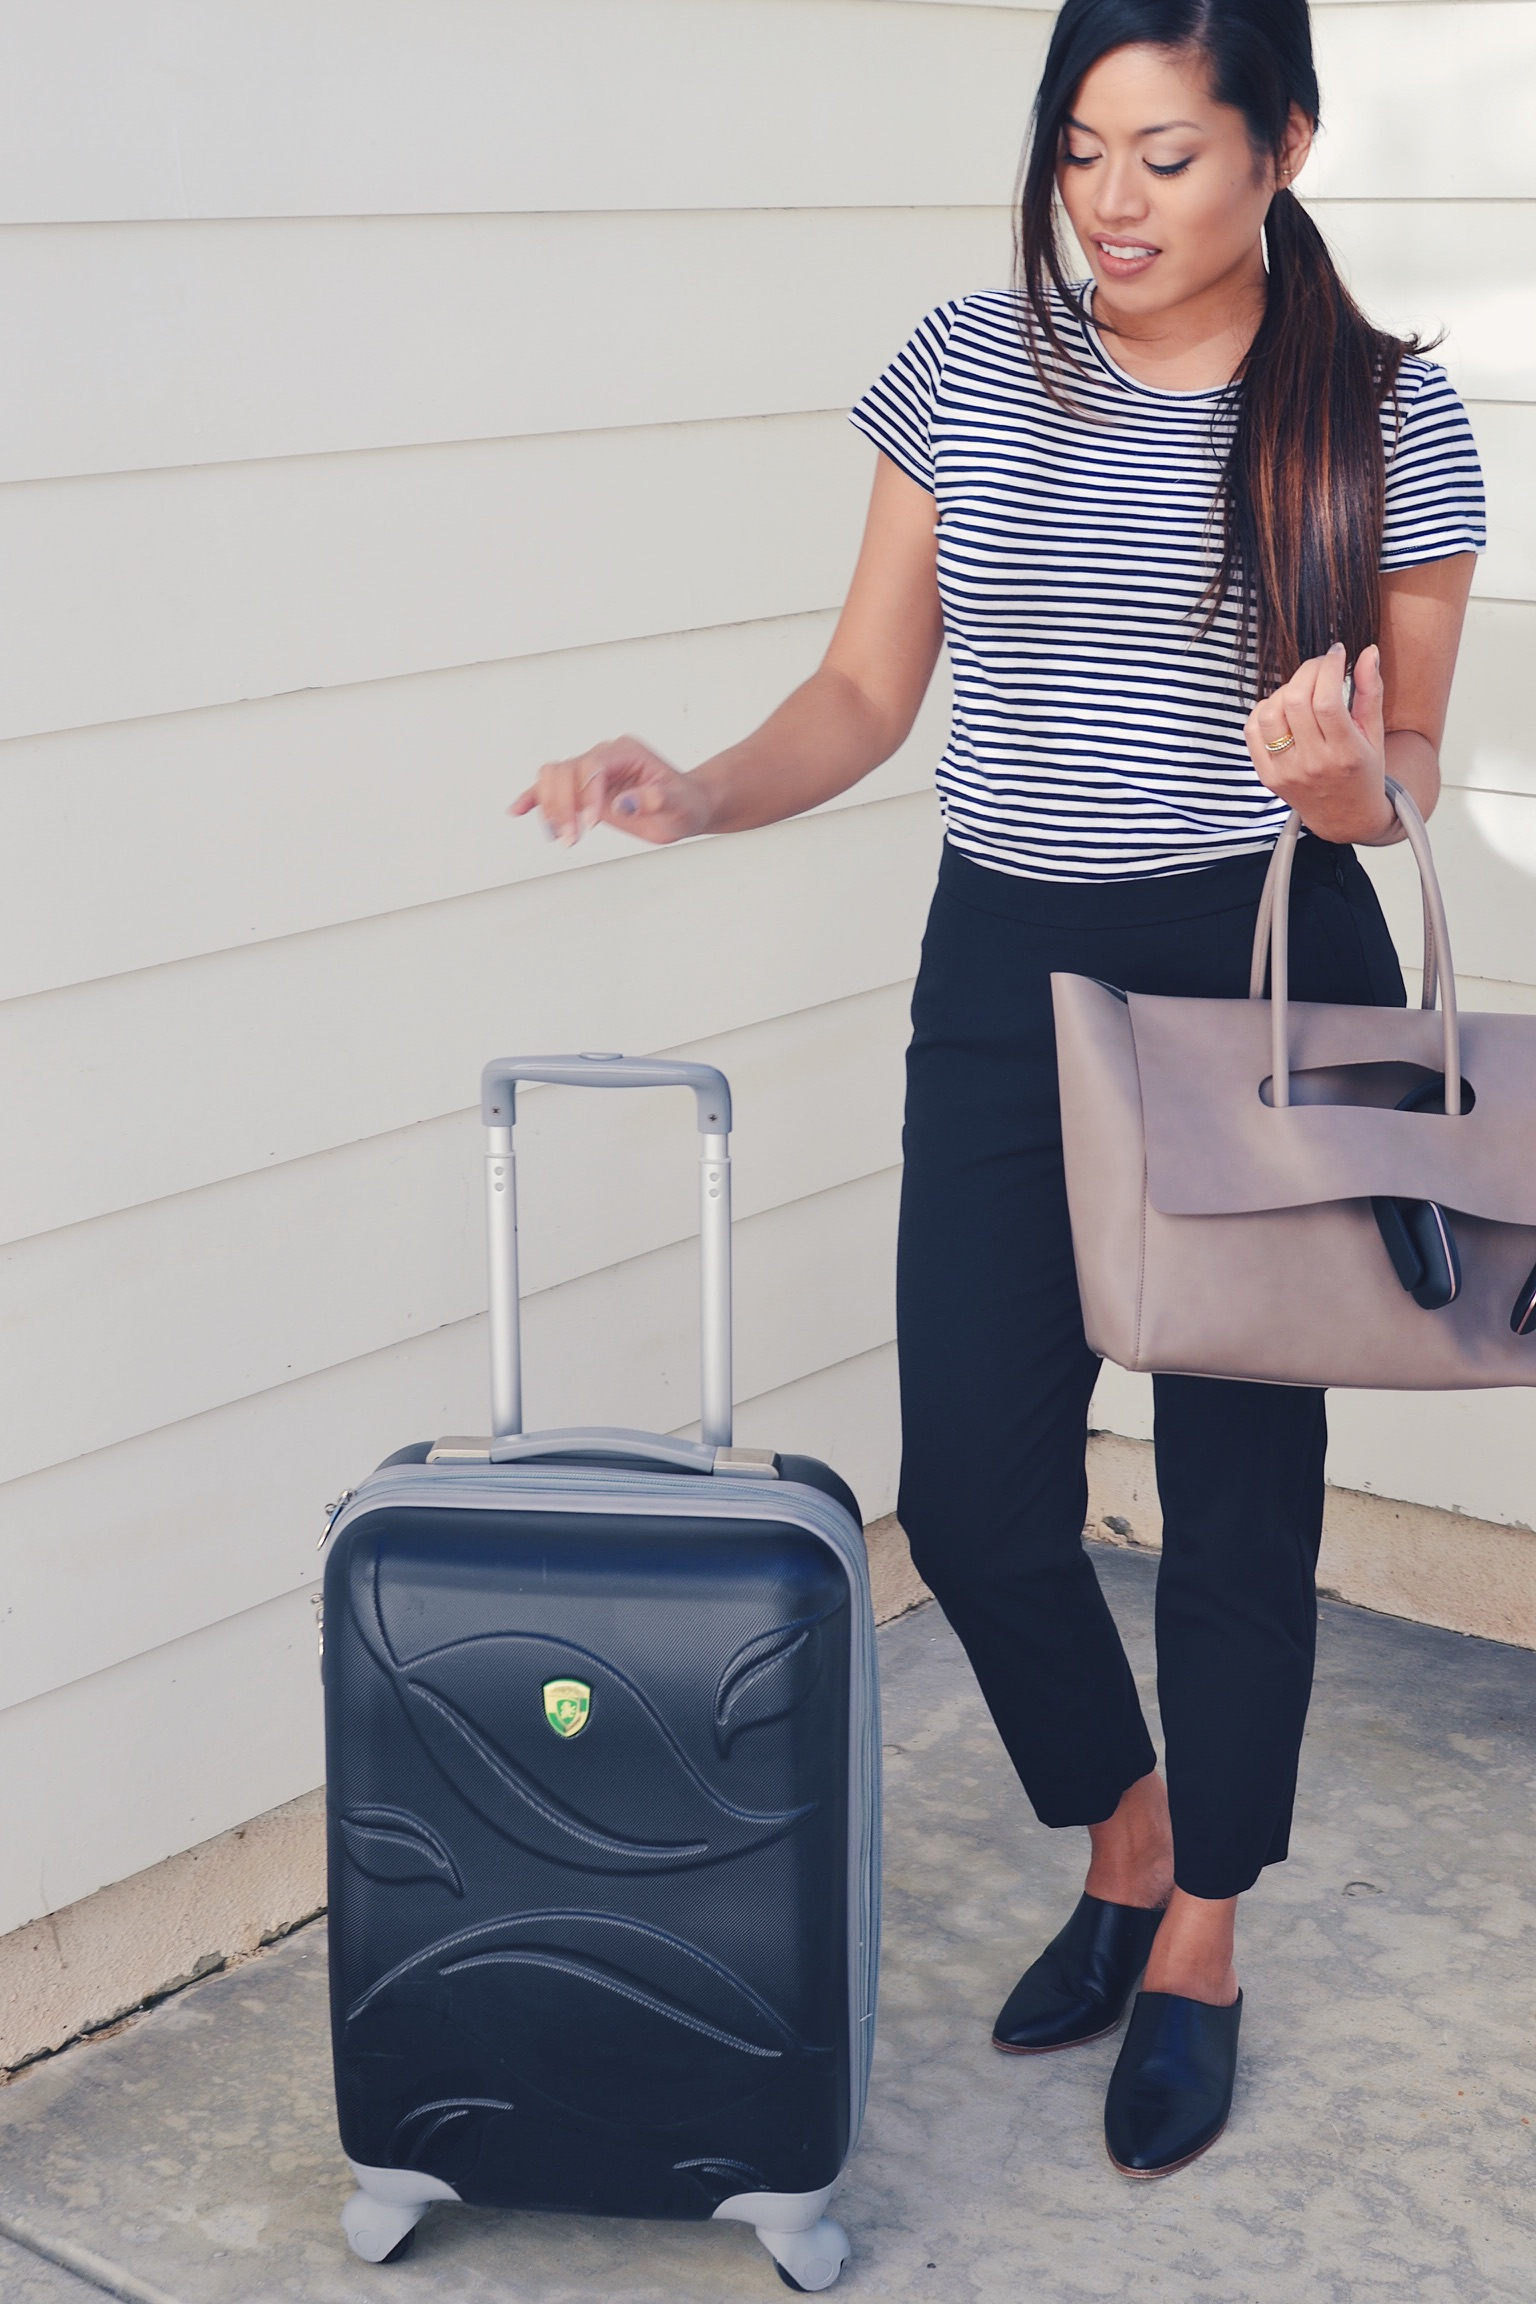 Classy & comfy airport outfit